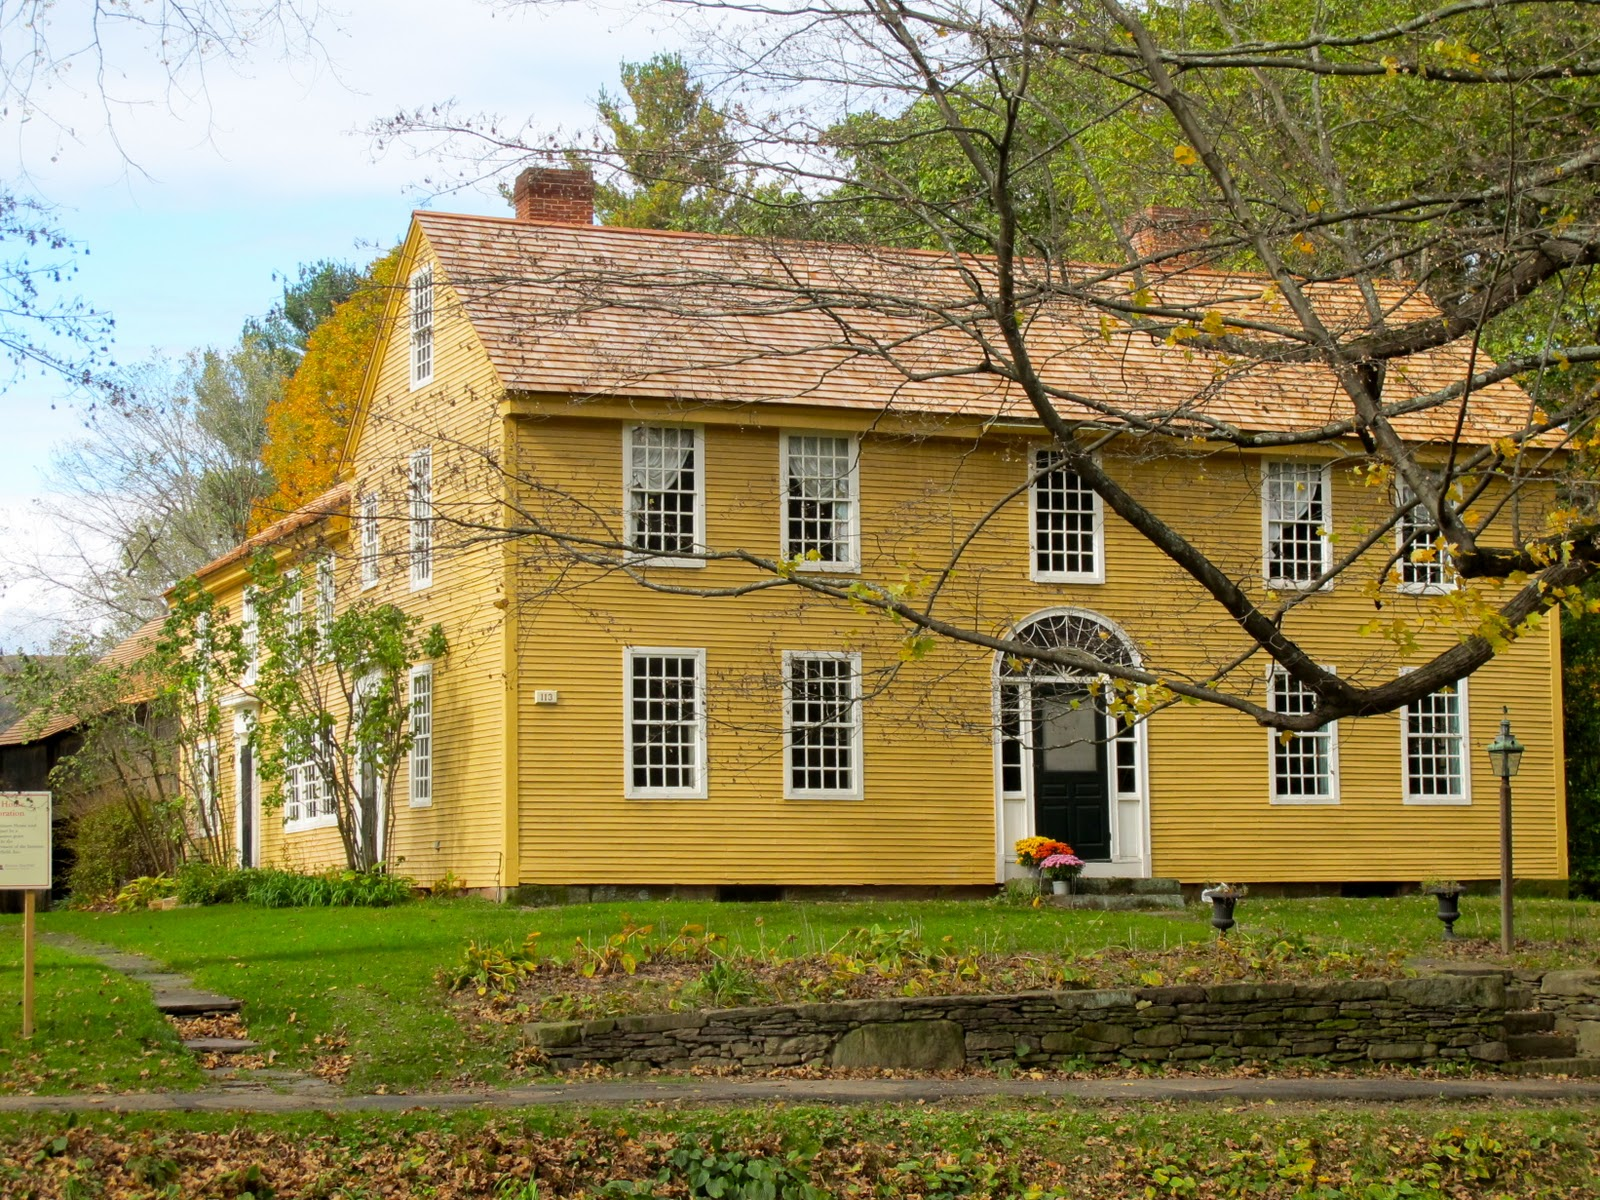 Jenny steffens hobick trip to deerfield mass new for New england colonial homes